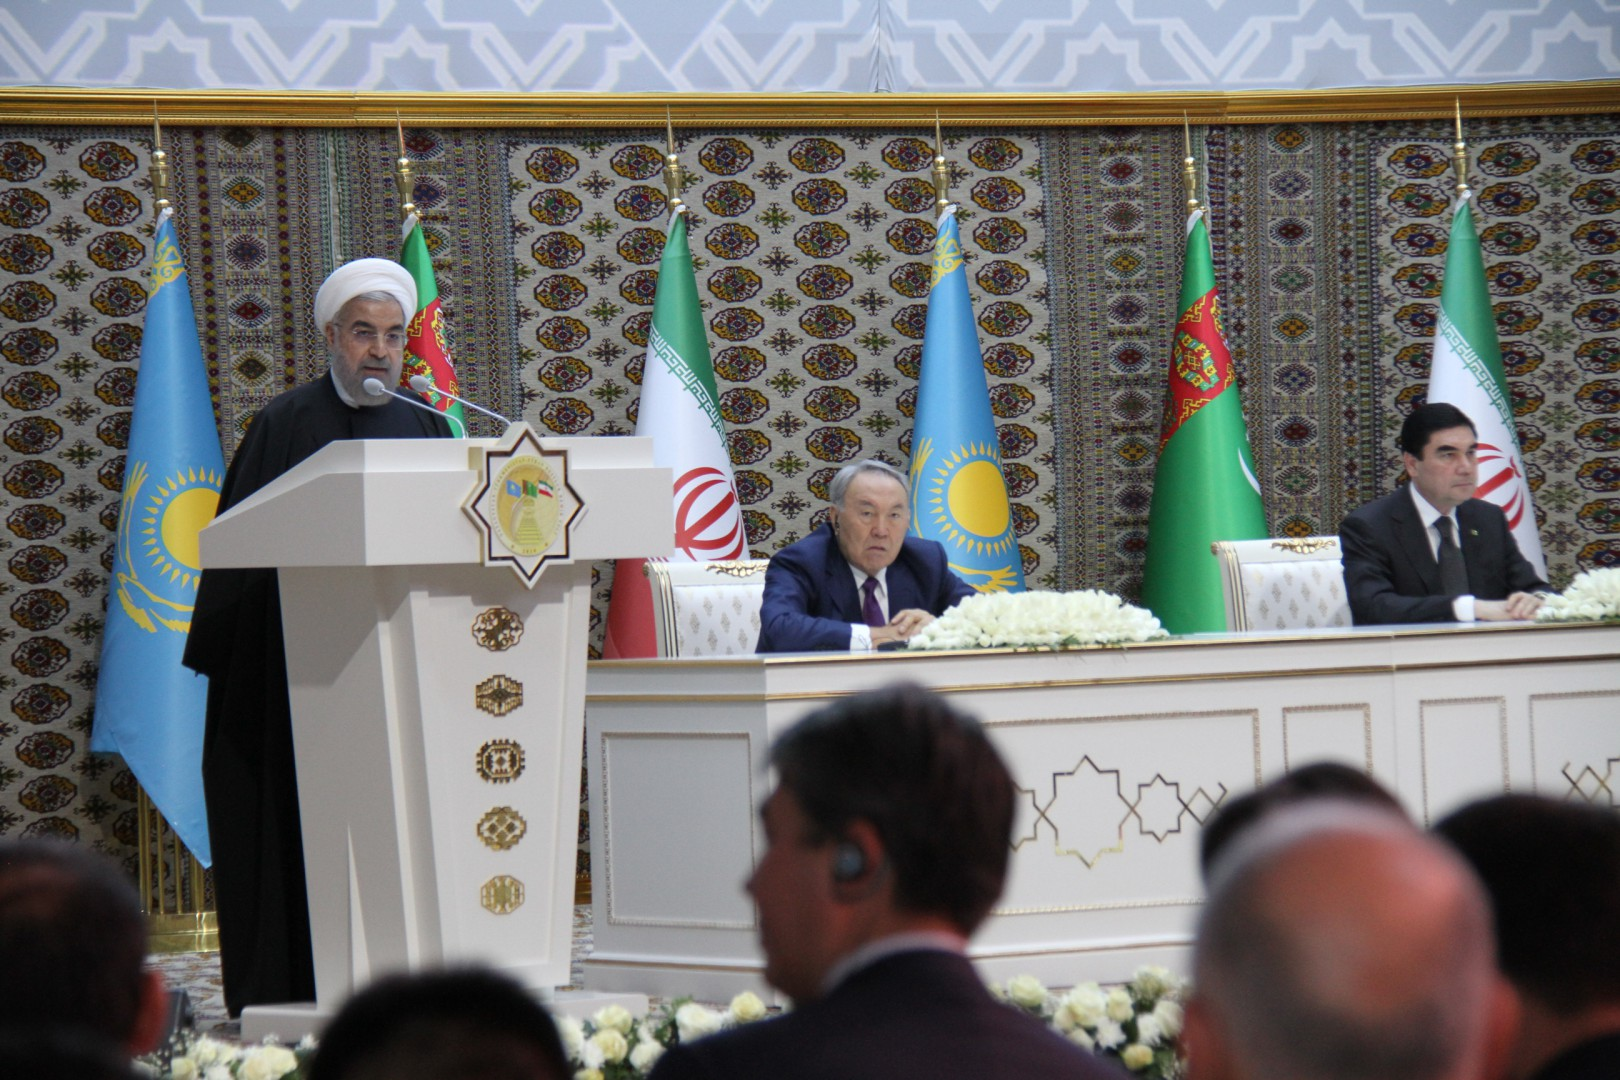 (141204) -- AK YAYLA, Dec. 4, 2014(Xinhua) -- Iranian president Hassan Rouhani (1,L) speaks while Kazakhstan's president Nursultan Nazarbayev (2,L) and Turkmen President Gurbanguly Berdimuhamedowin (1,R) listen during the linking ceremony of the two sections of the international railway between Turkmenistan and Iran in the Turkmen village of Ak Yayla bordering Iran, on December 3, 2014. Kazakhstan's president Nursultan Nazarbayev, Turkmen President Gurbanguly Berdimuhamedow and Iranian president Hassan Rouhani co-inaugurated the new railway route that will improve  the exchange of goods between the three countries. The railway is also a part of transportation artery from coastal city Lianyungang of east China to west Asian counties. (Xinhua/Lu Jingli)(azp)